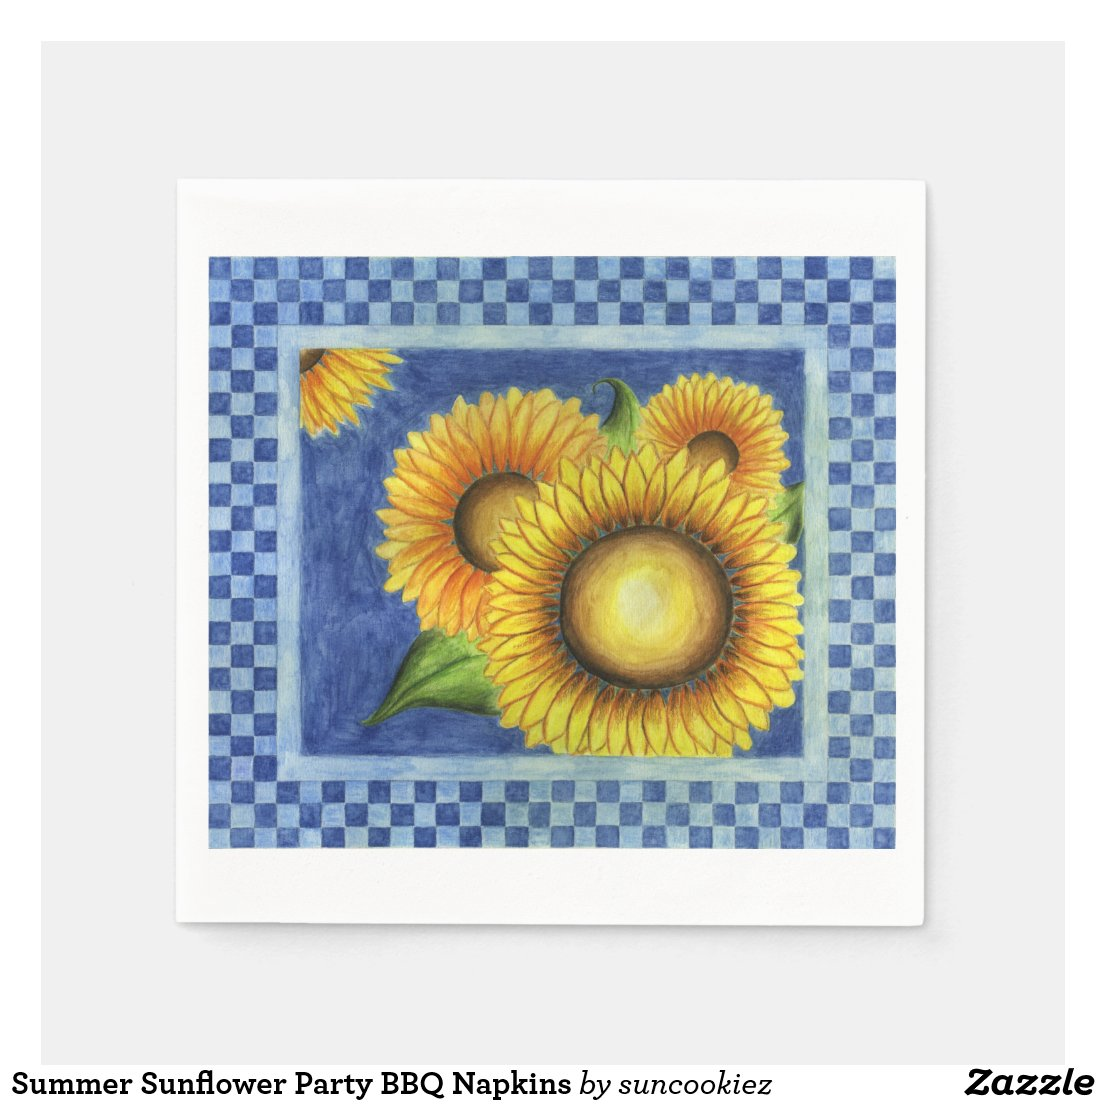 Summer Sunflower Party BBQ Napkins